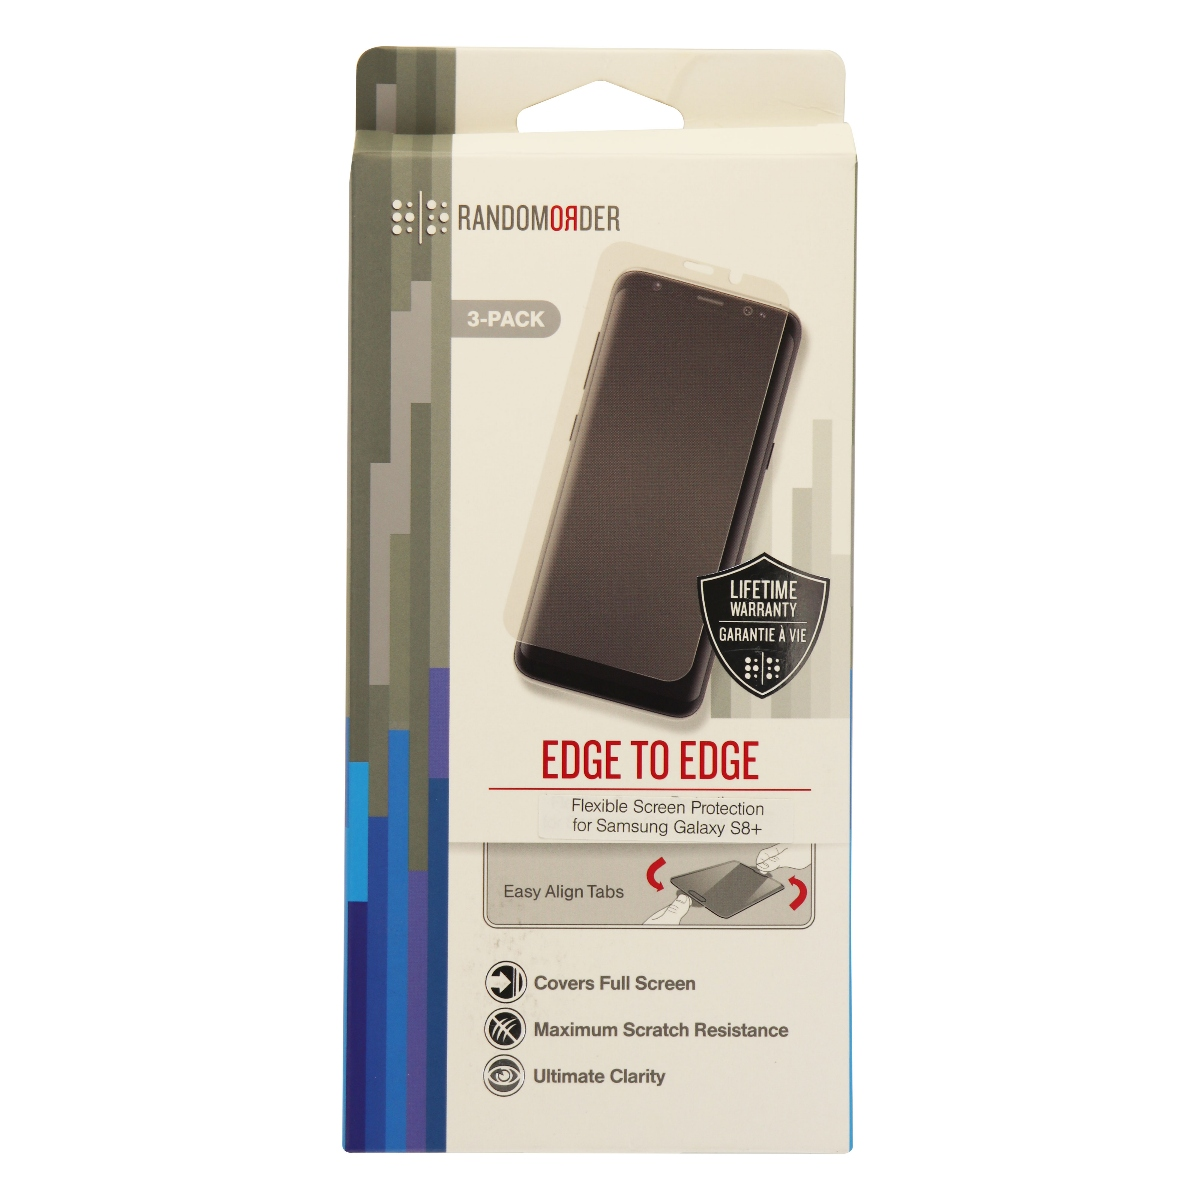 Random Order Edge to Edge Screen Protector for Galaxy S8+ - Clear 3 Pack